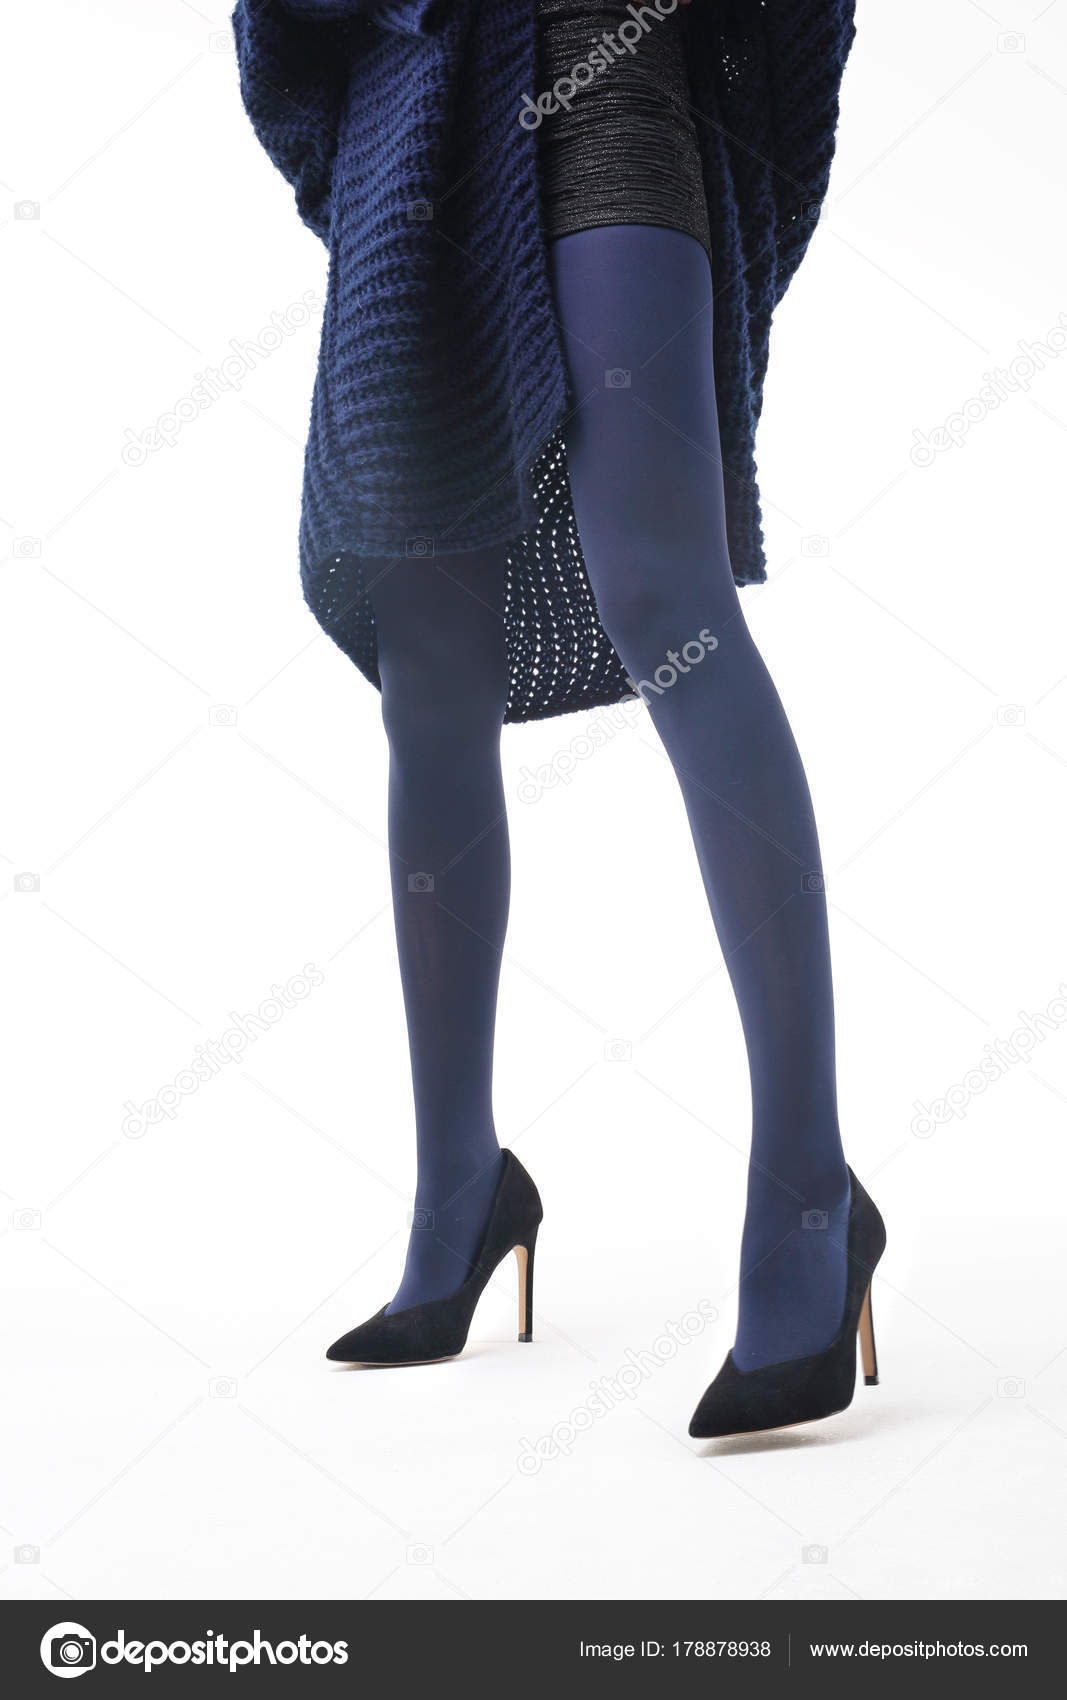 d5a9b2d3642 Navy Tights Beautiful Shapely Legs Woman Opaque Tights — Stock Photo ...